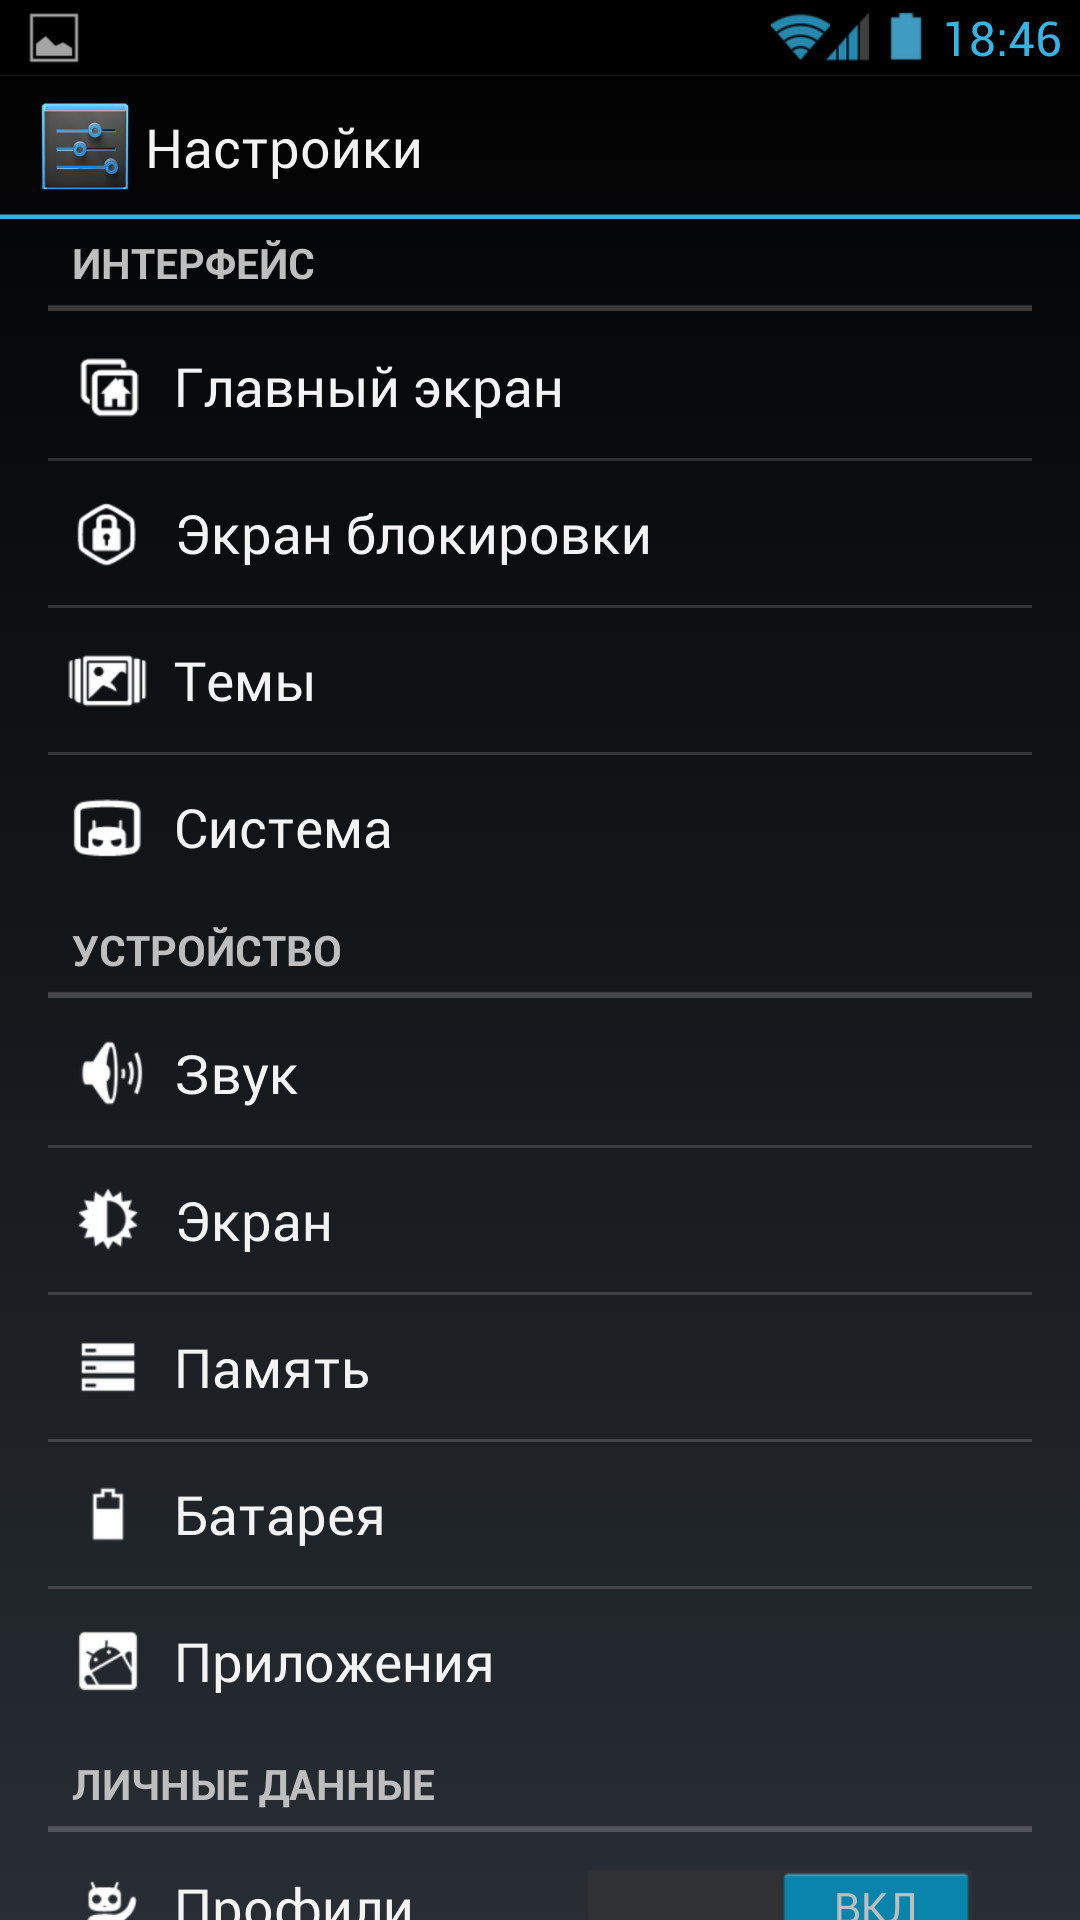 Screenshot_2013-11-25-18-46-42